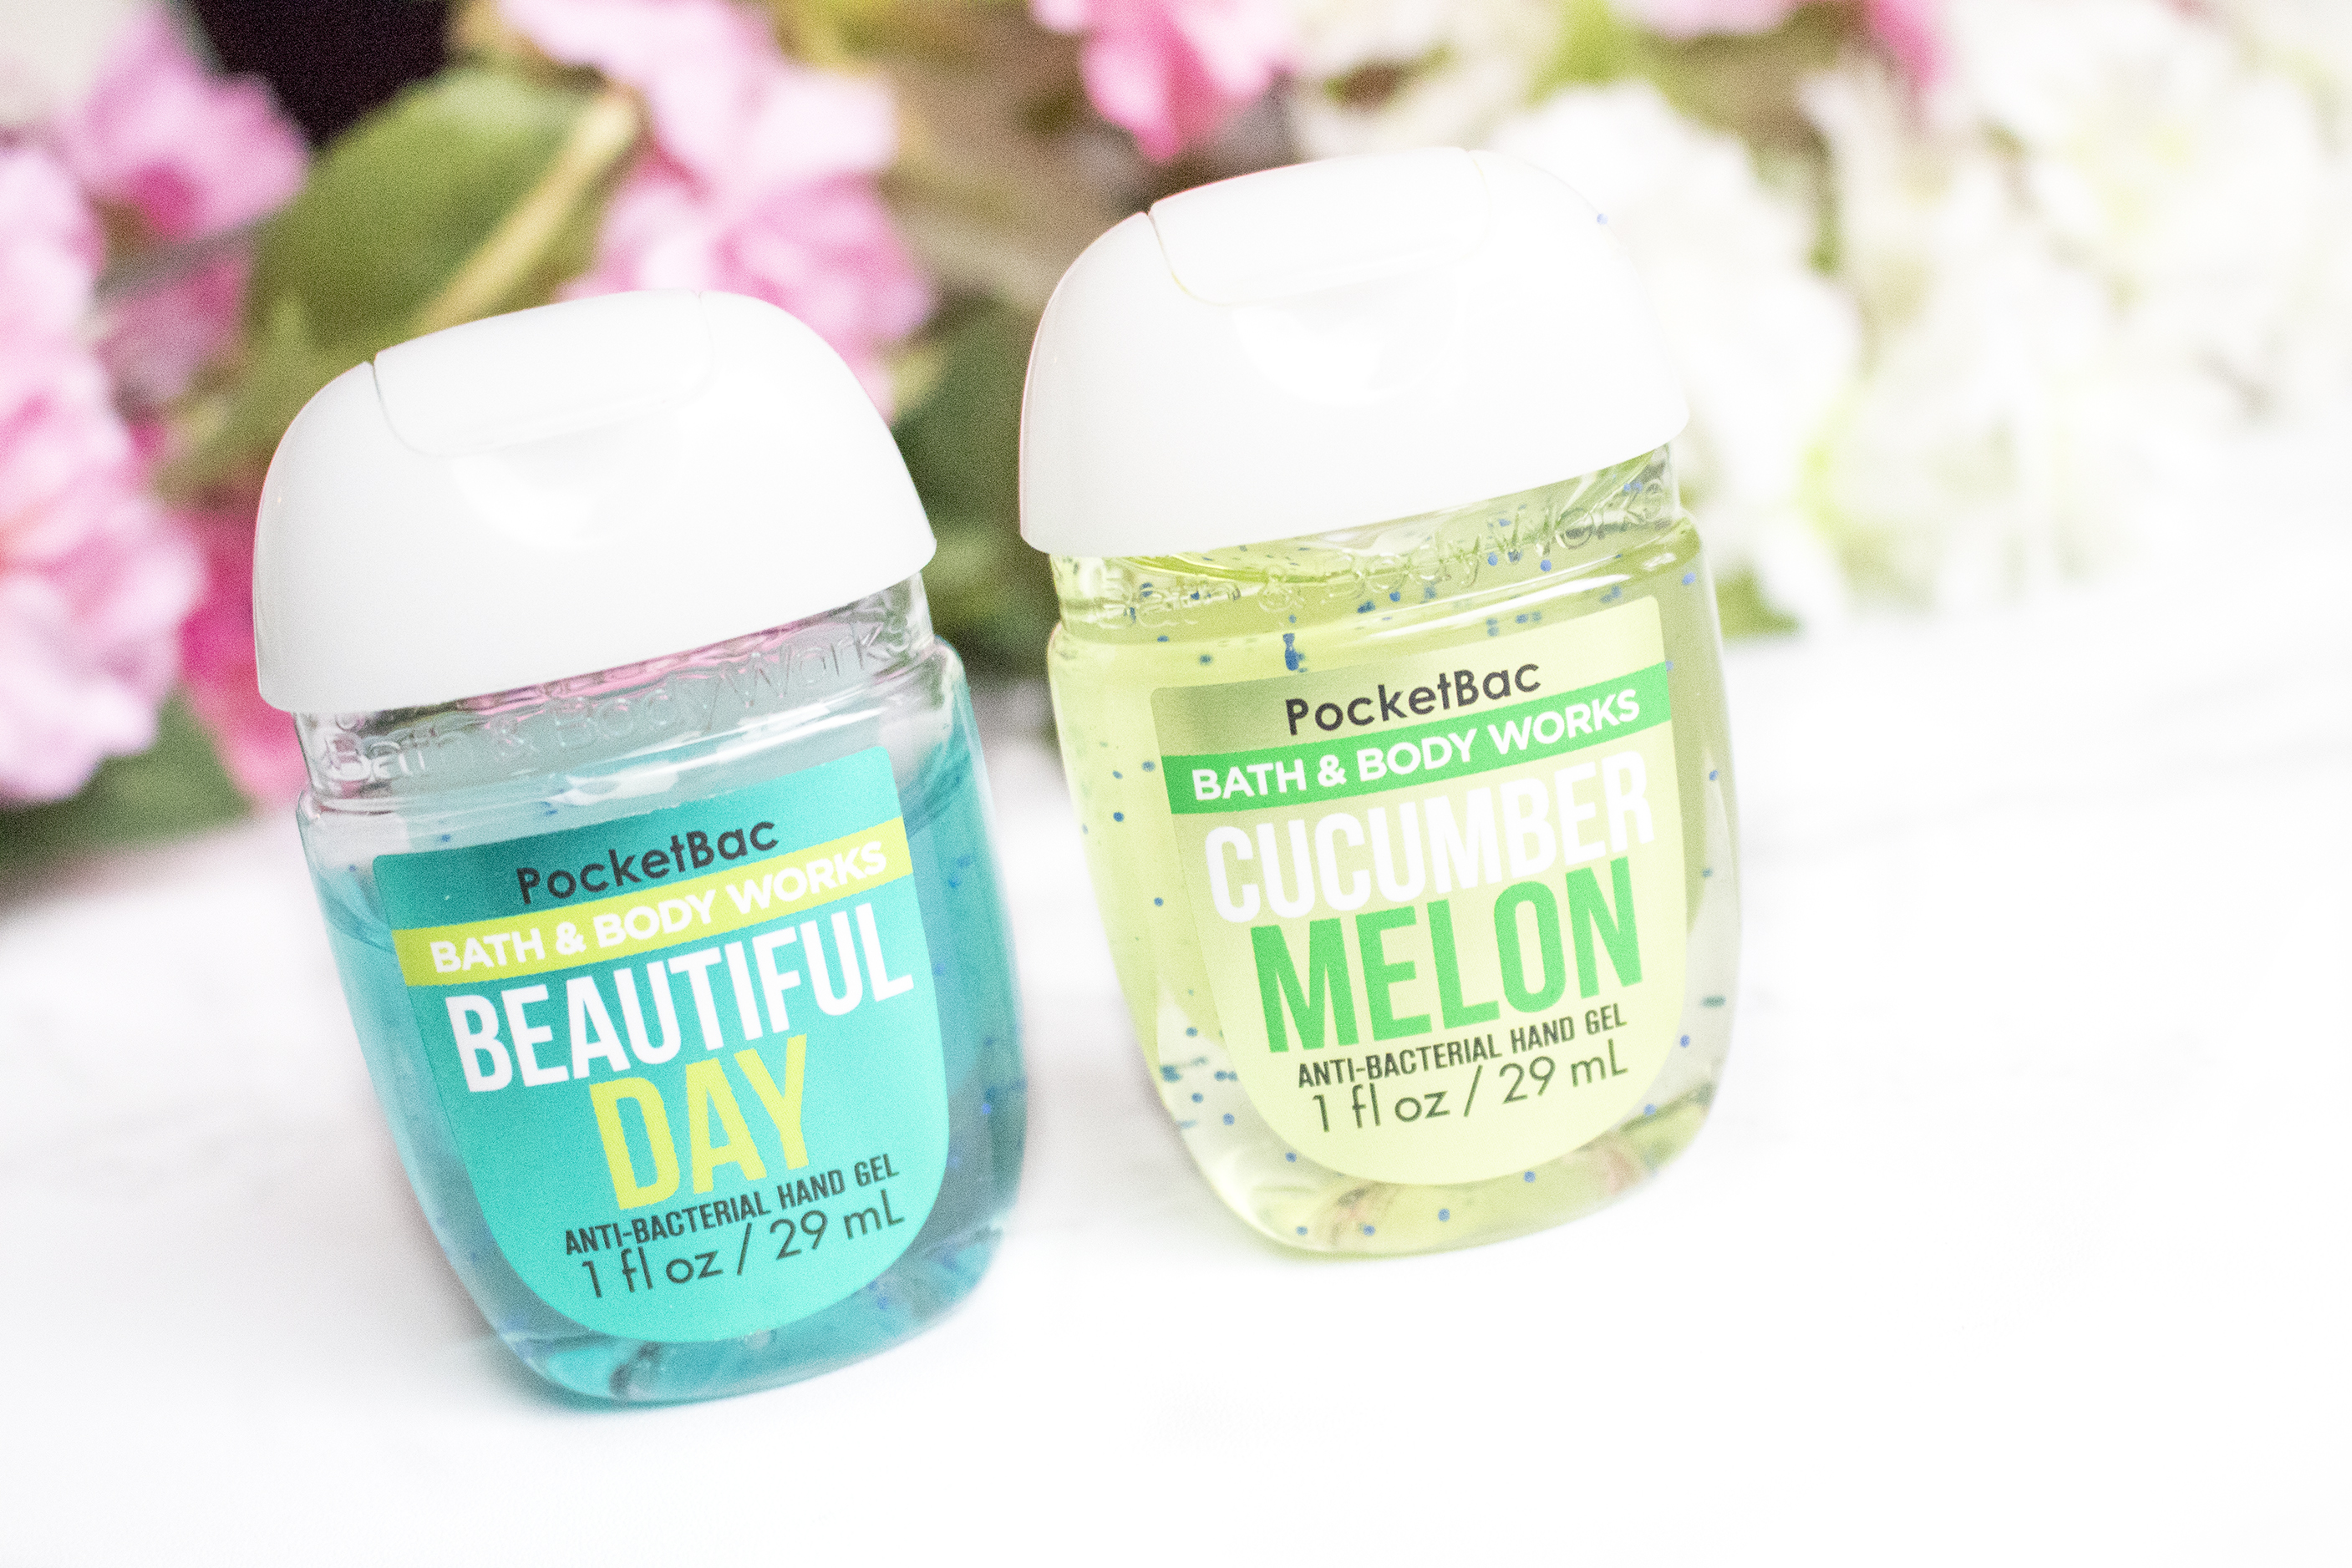 hand gel bath body works review